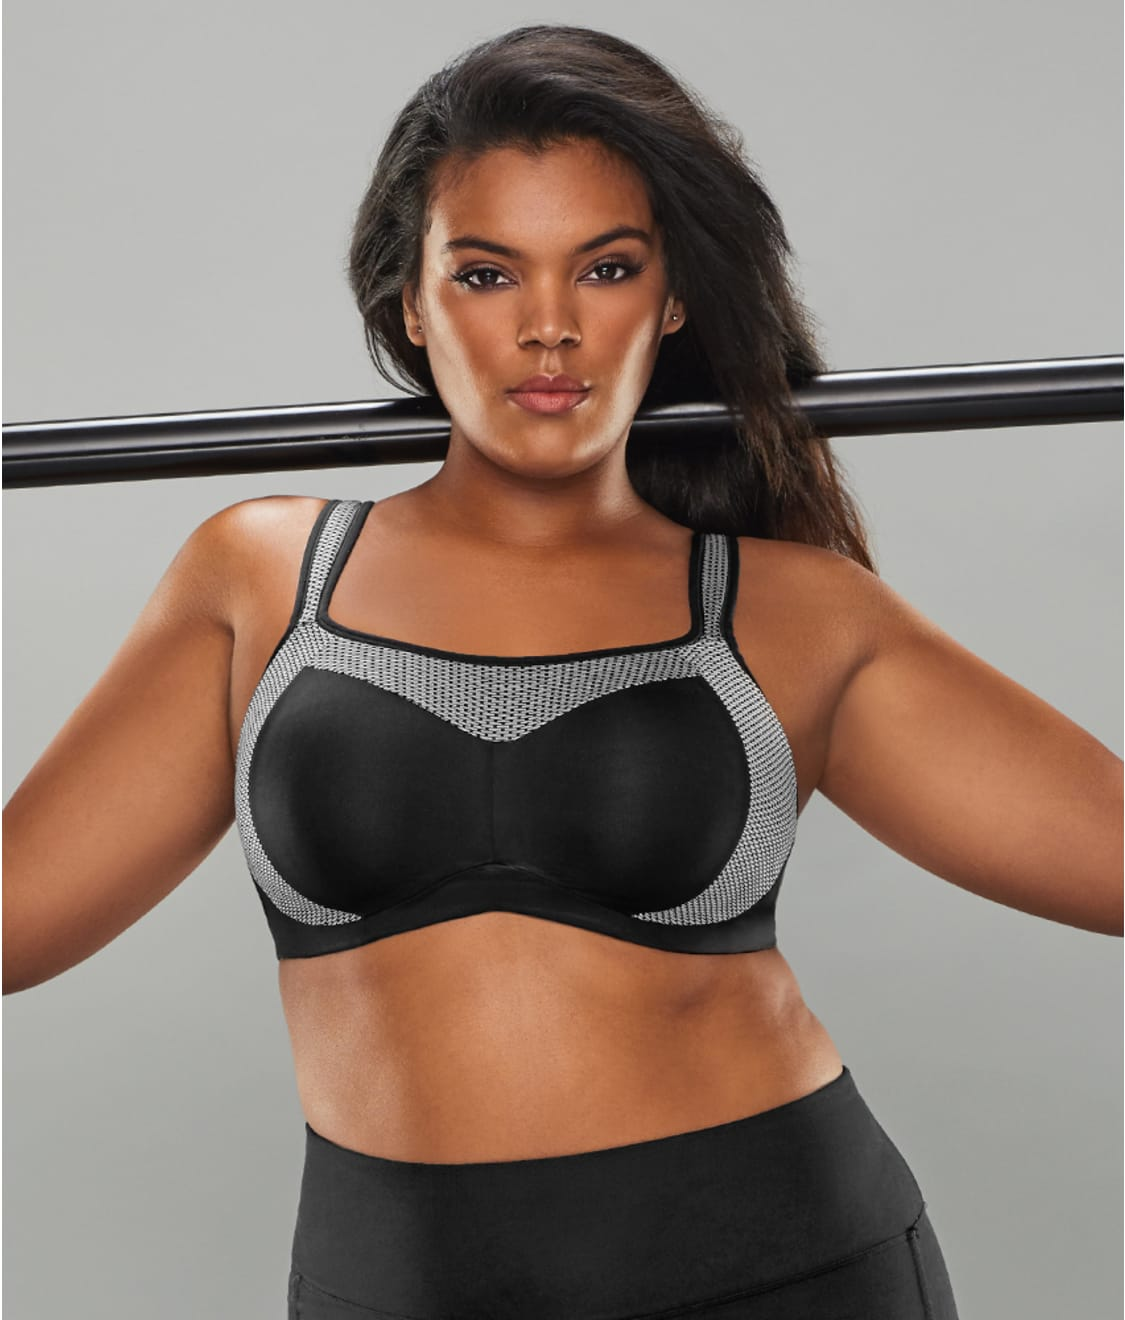 85c63774a6345 Curvy Couture Confident Fit High Impact Wire-Free Sports Bra